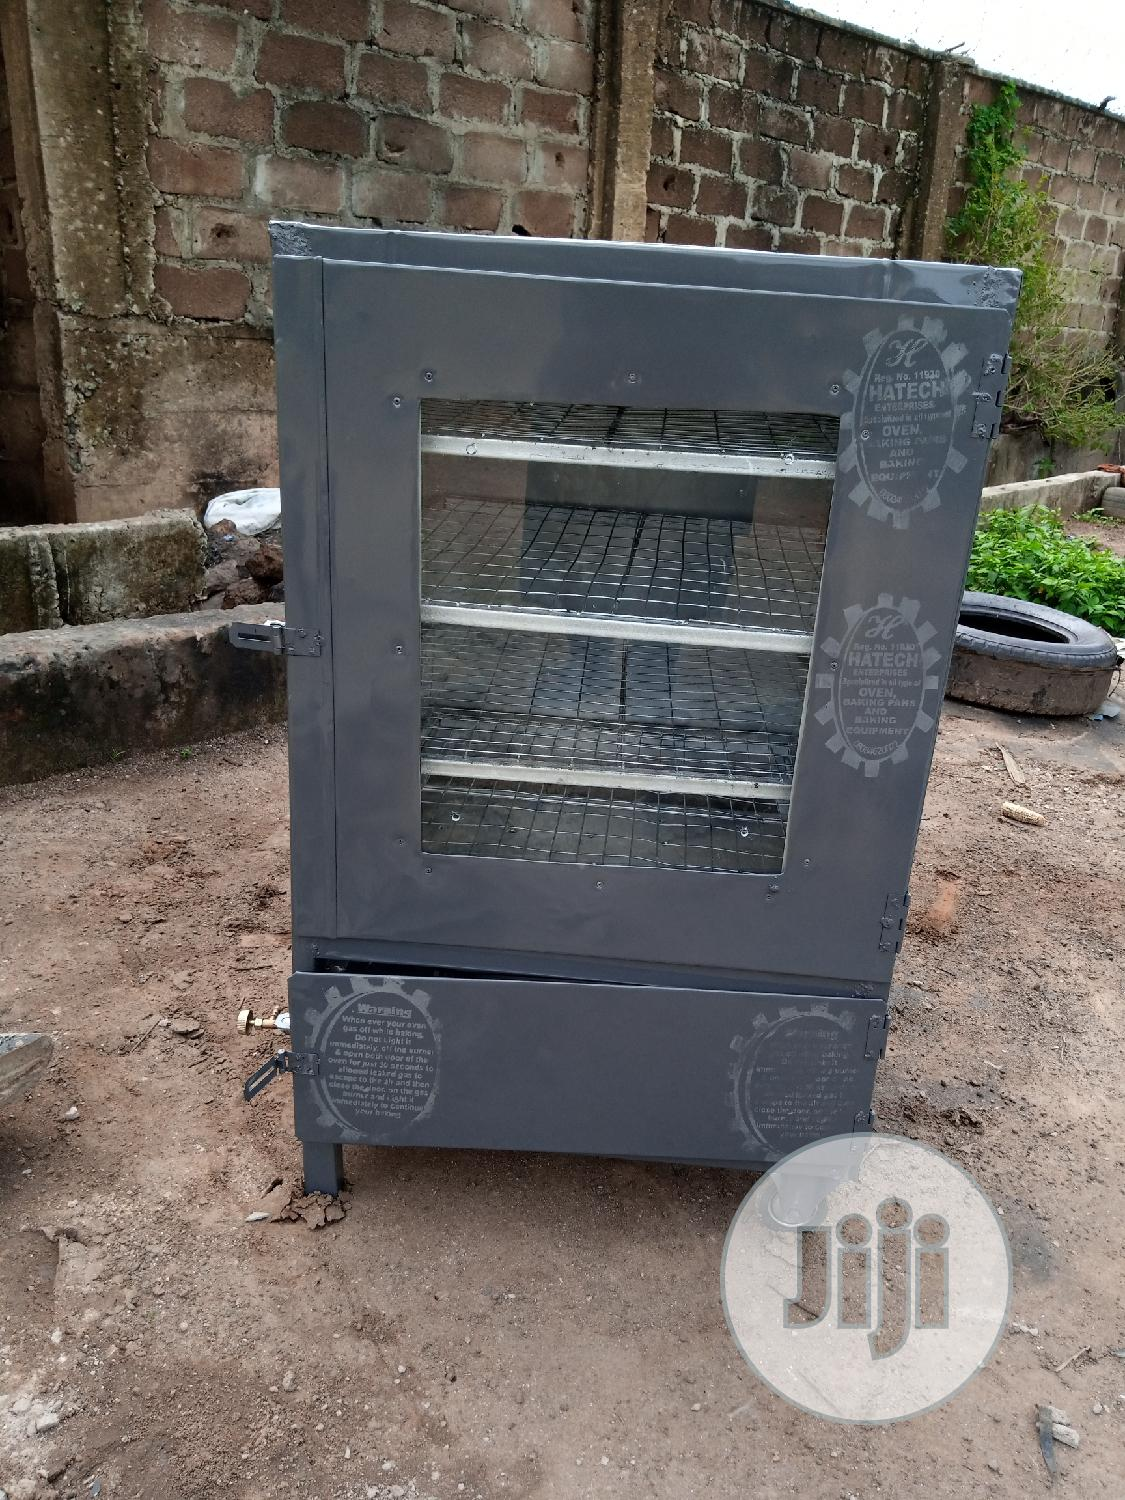 Easytech Charcoal And Gas Oven Enterprises | Industrial Ovens for sale in Ilorin West, Kwara State, Nigeria